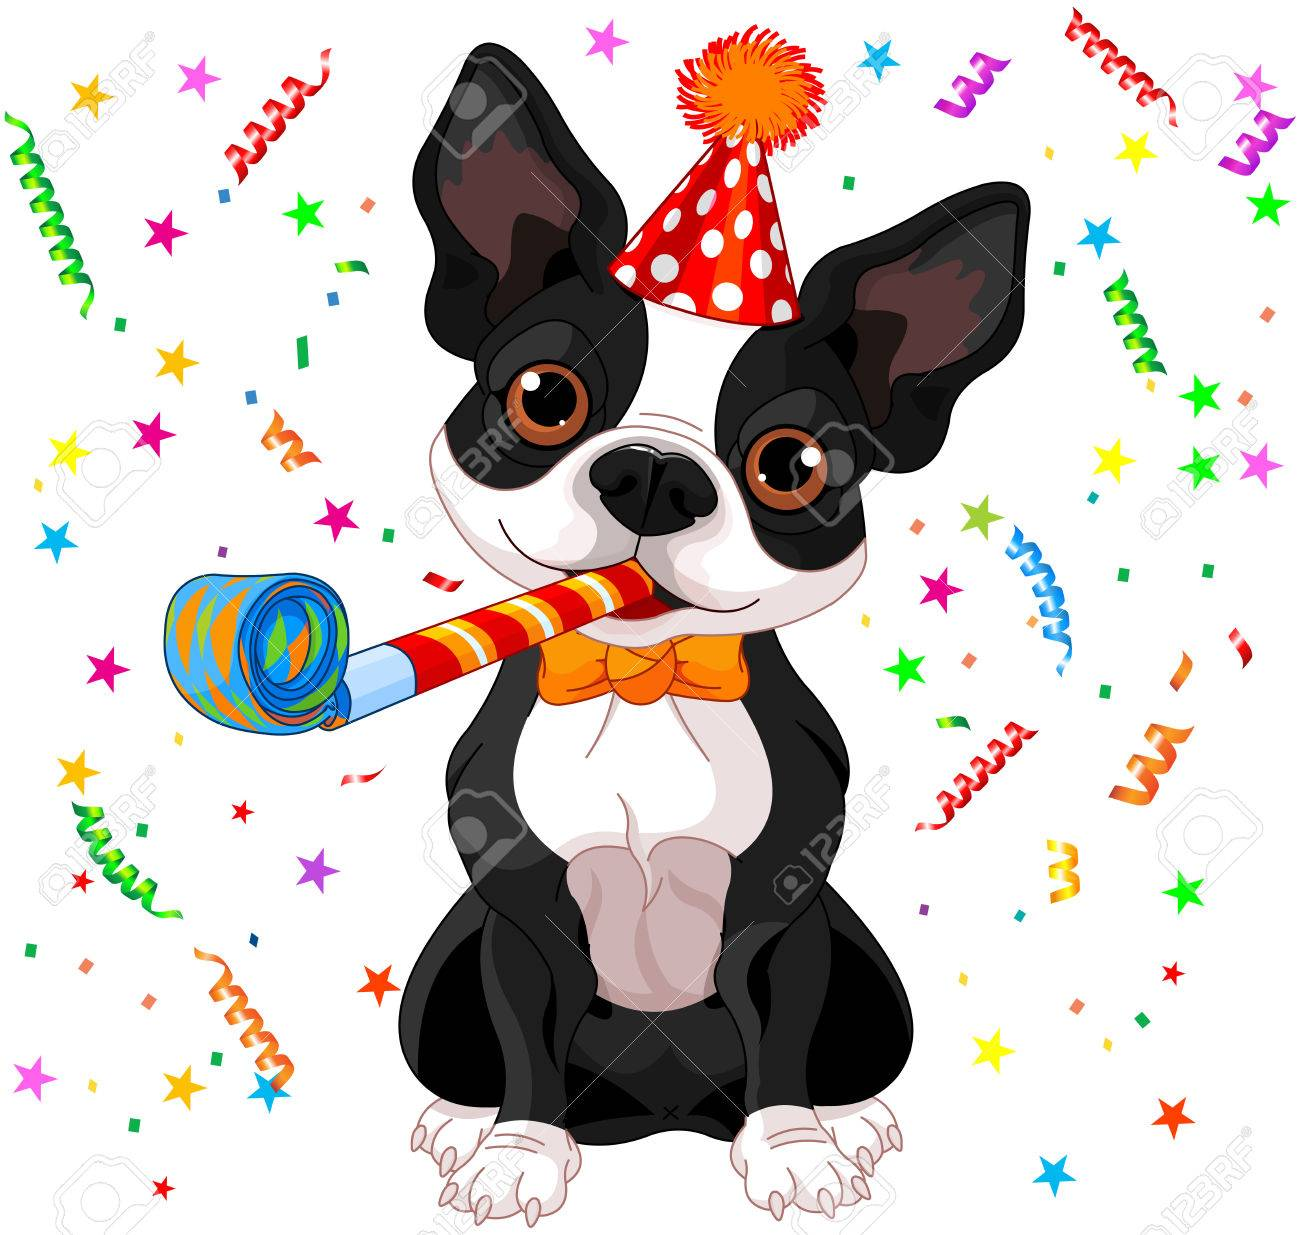 Passer devant les grillages/portails de chiens aboyeurs - Page 2 35588778-illustration-of-cute-boston-terrier-celebrating